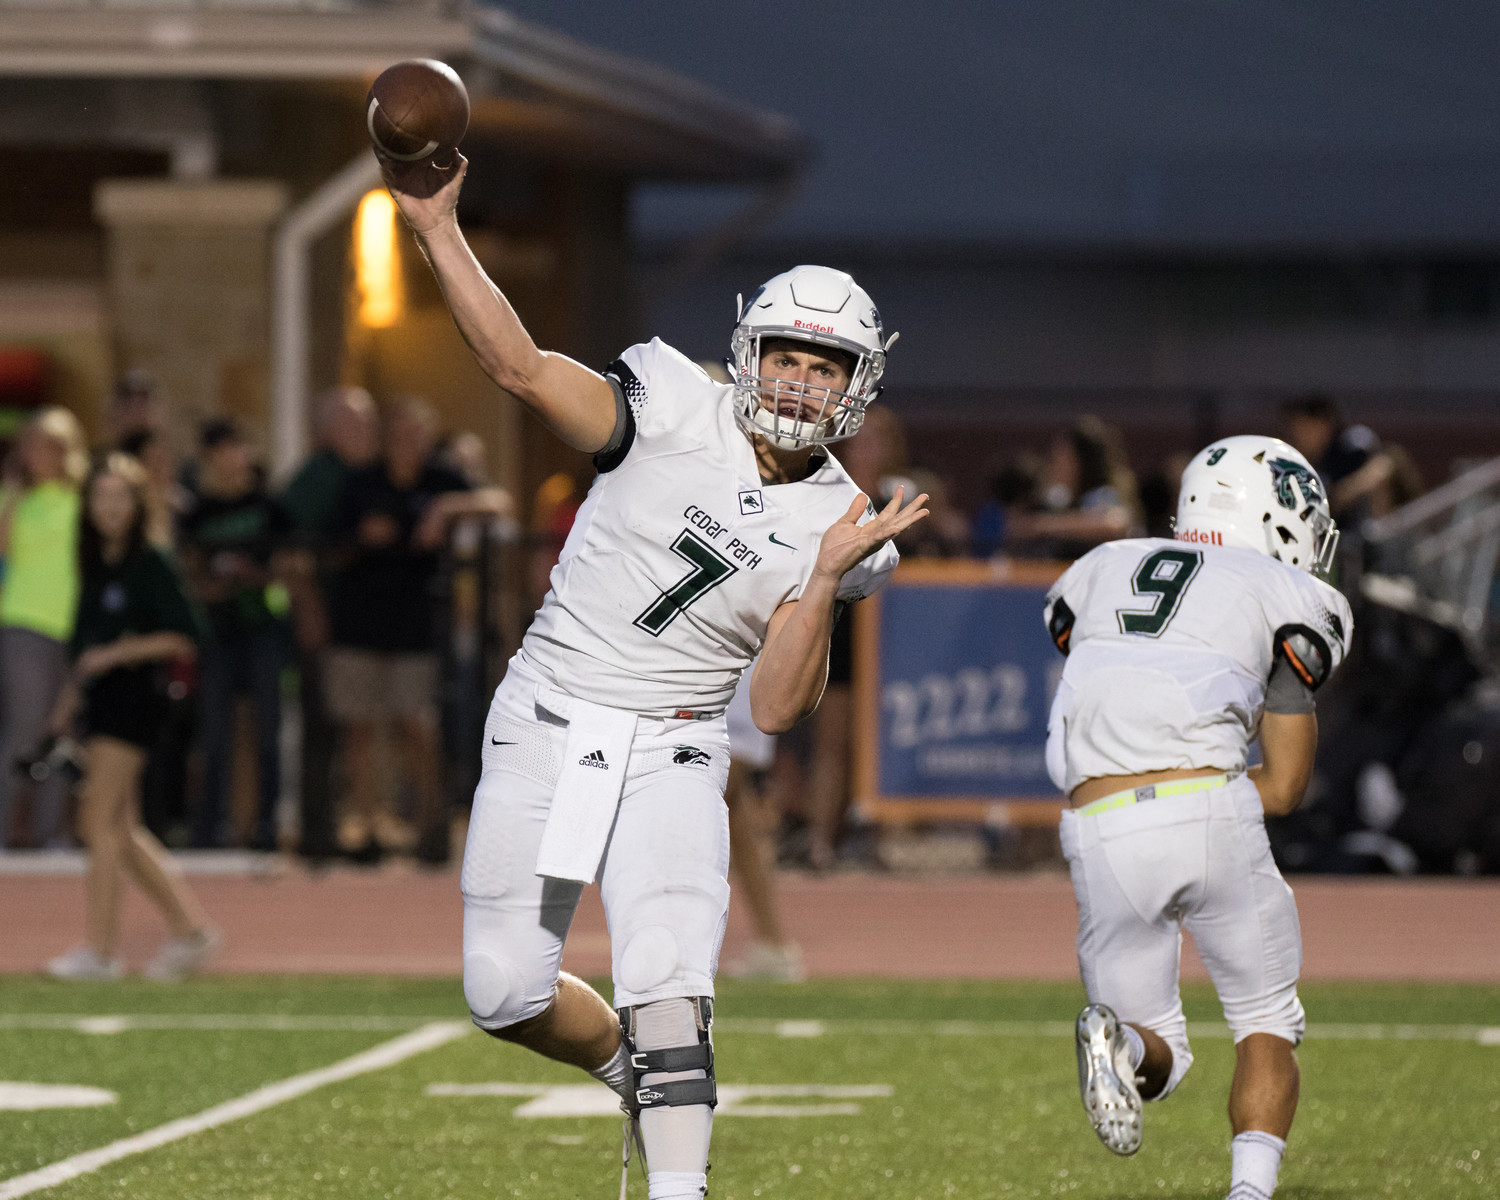 Mak Sexton only played in the first half Friday night, throwing for 188 yards and five touchdowns to help the Timberwolves shutout Rouse 41-0.